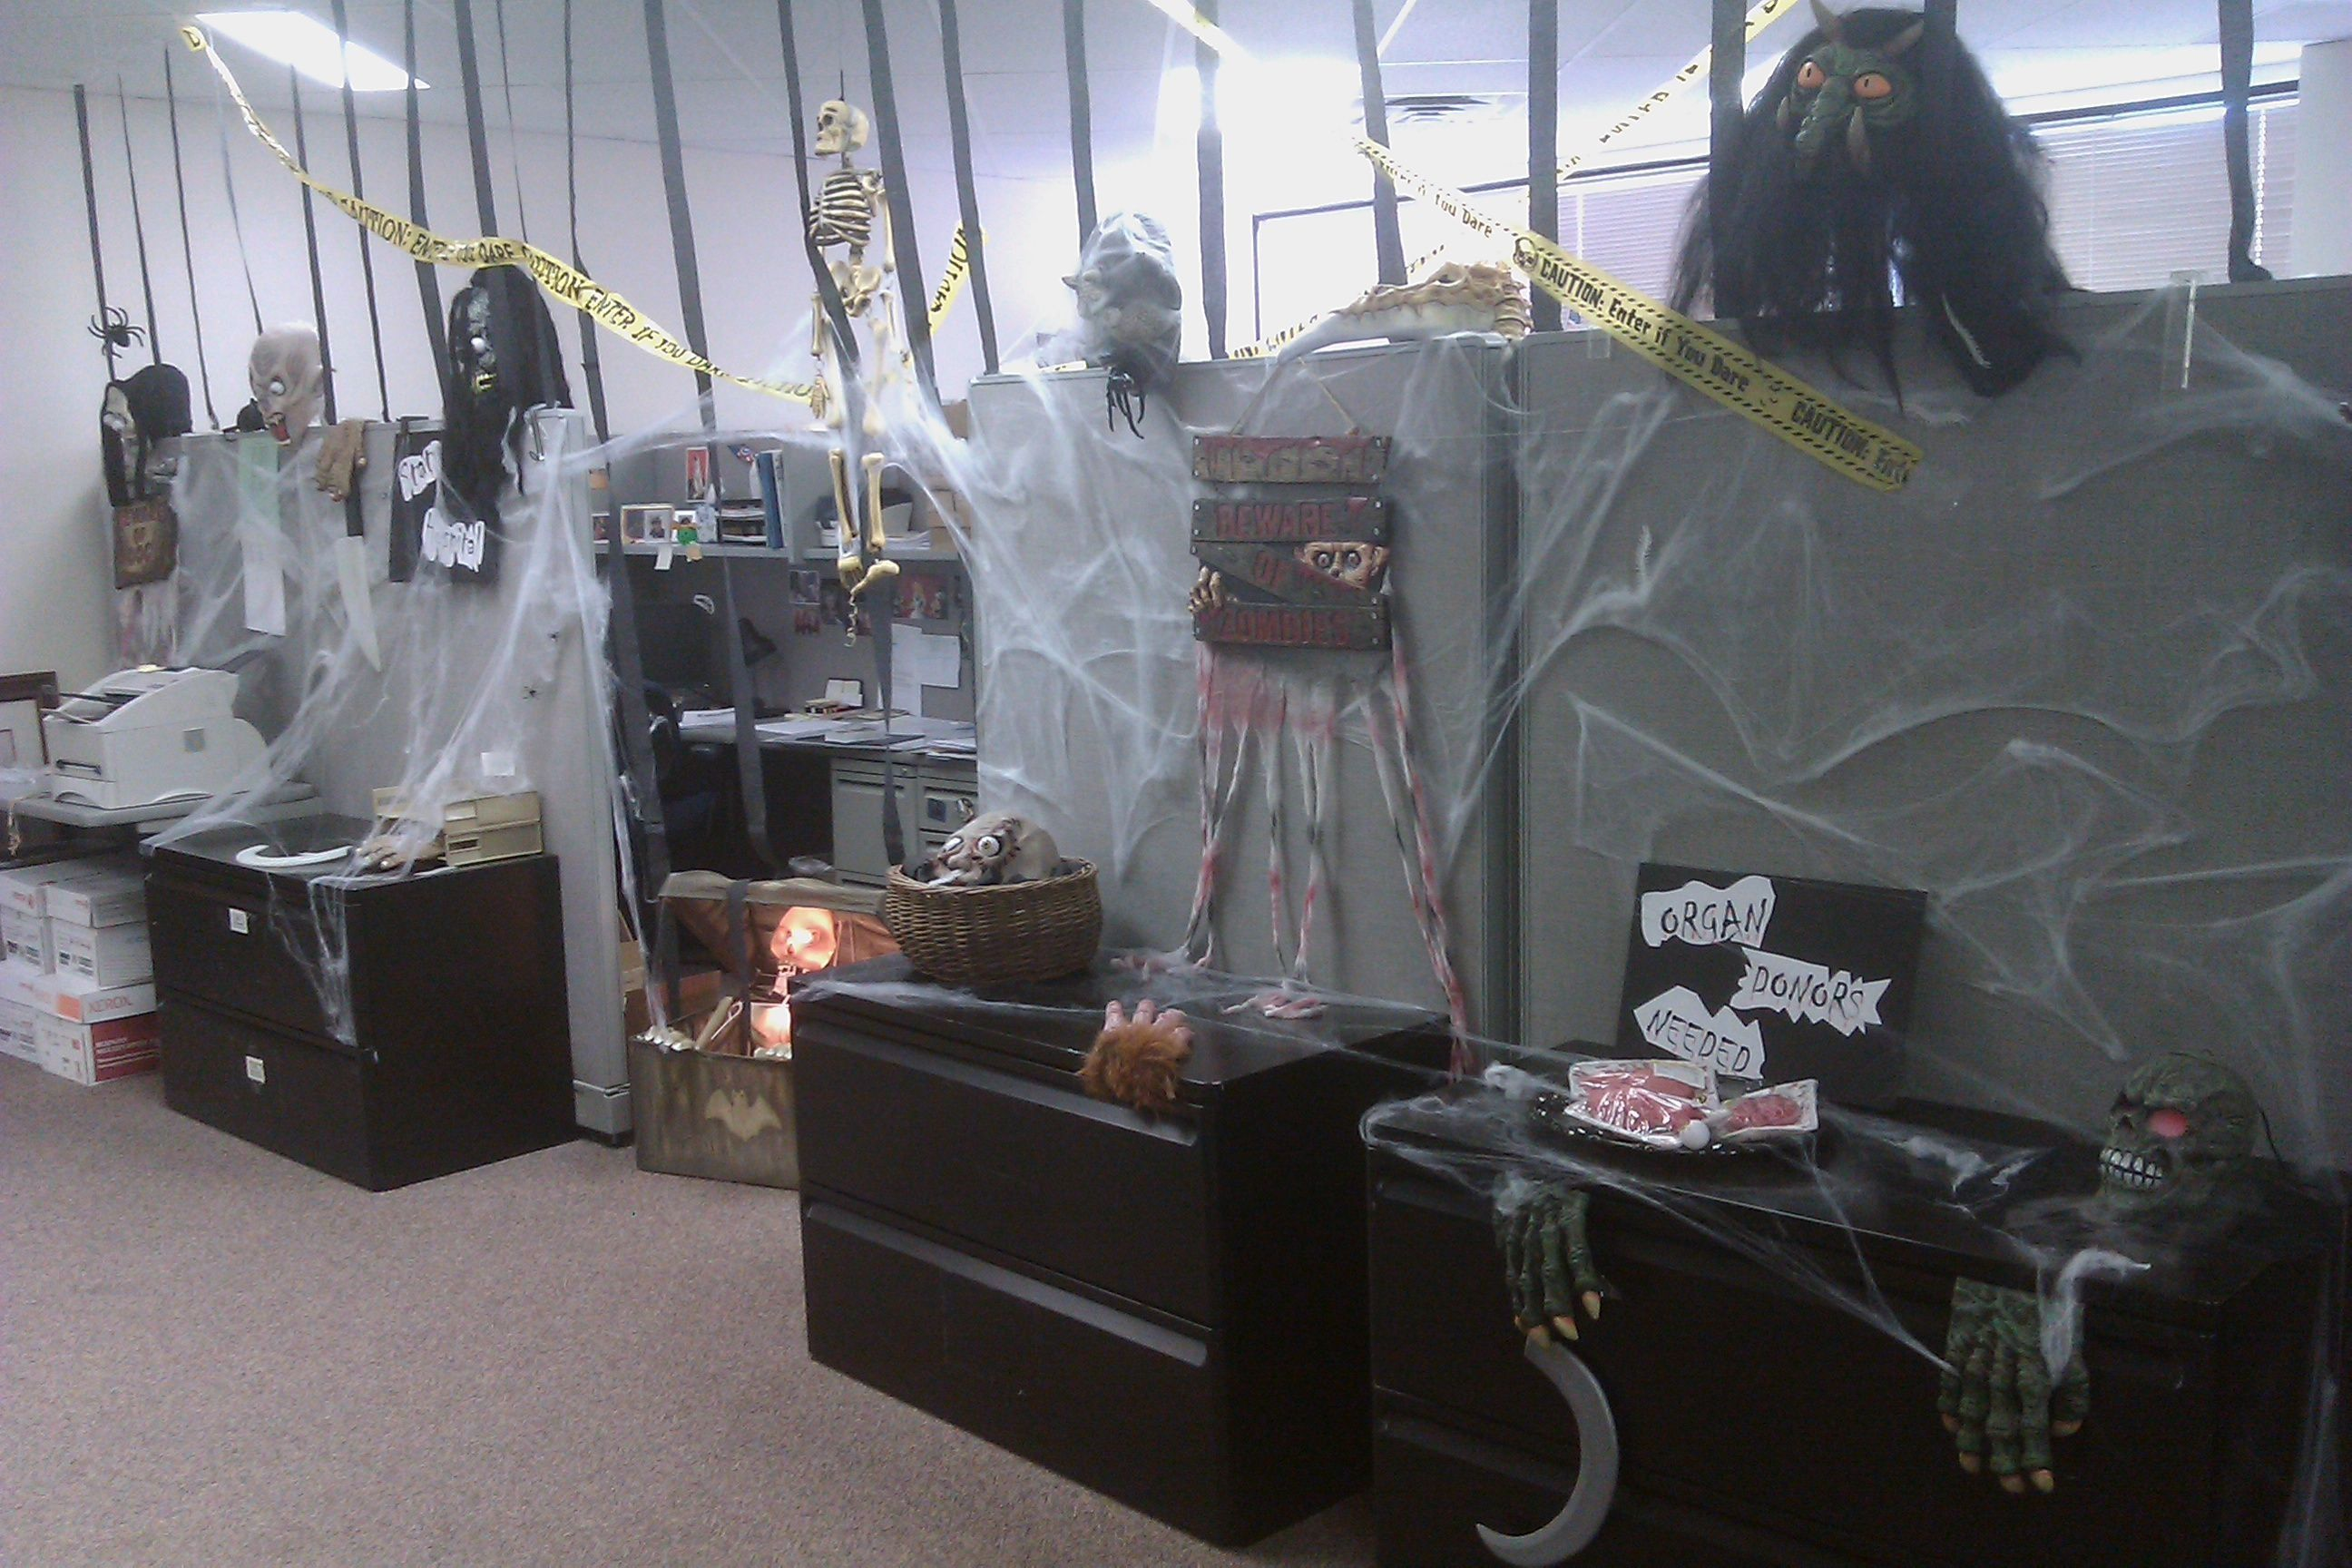 19 Halloween Office Decorations Halloween Office Decor Clown Nonprofit Centers Celebrating Halloween Escapevelocityco Halloween Office Decor Archives The Nonpr Office Halloween Decorations Halloween Cubicle Cheap Halloween Decorations